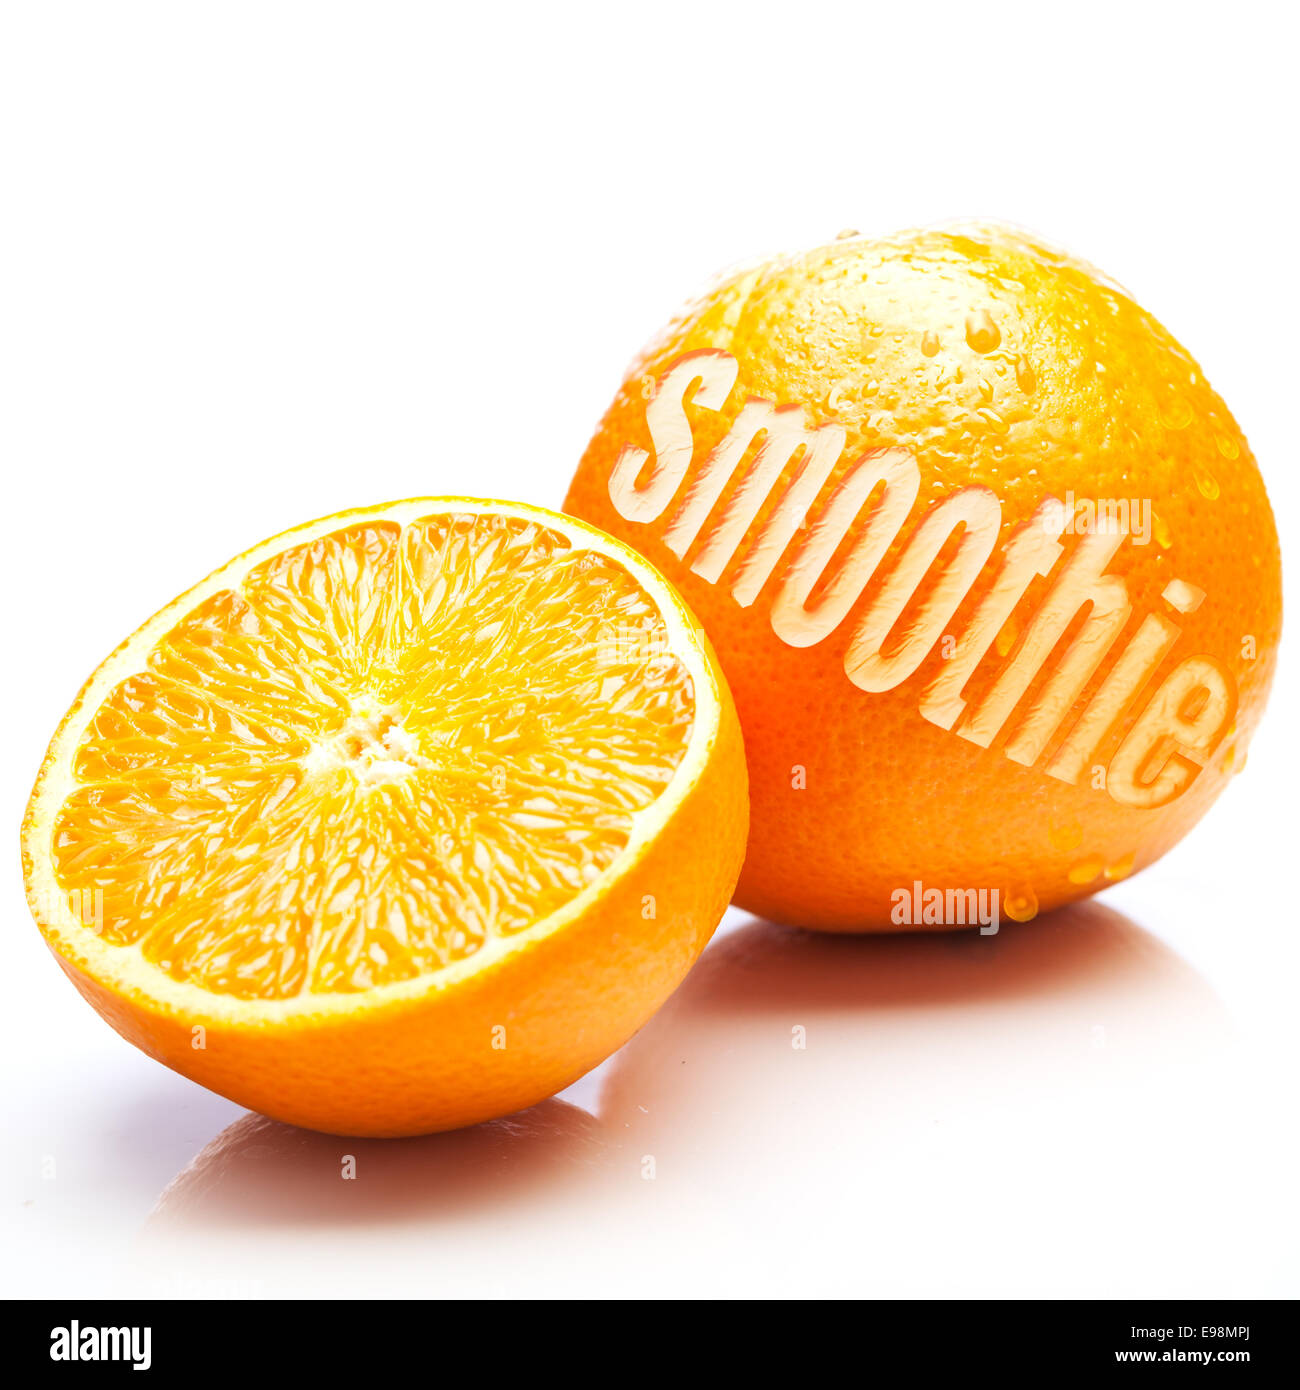 Fresh oranges with one halved to show the juicy pulp and the other whole with the word Smoothie cut out of the rind - Stock Image